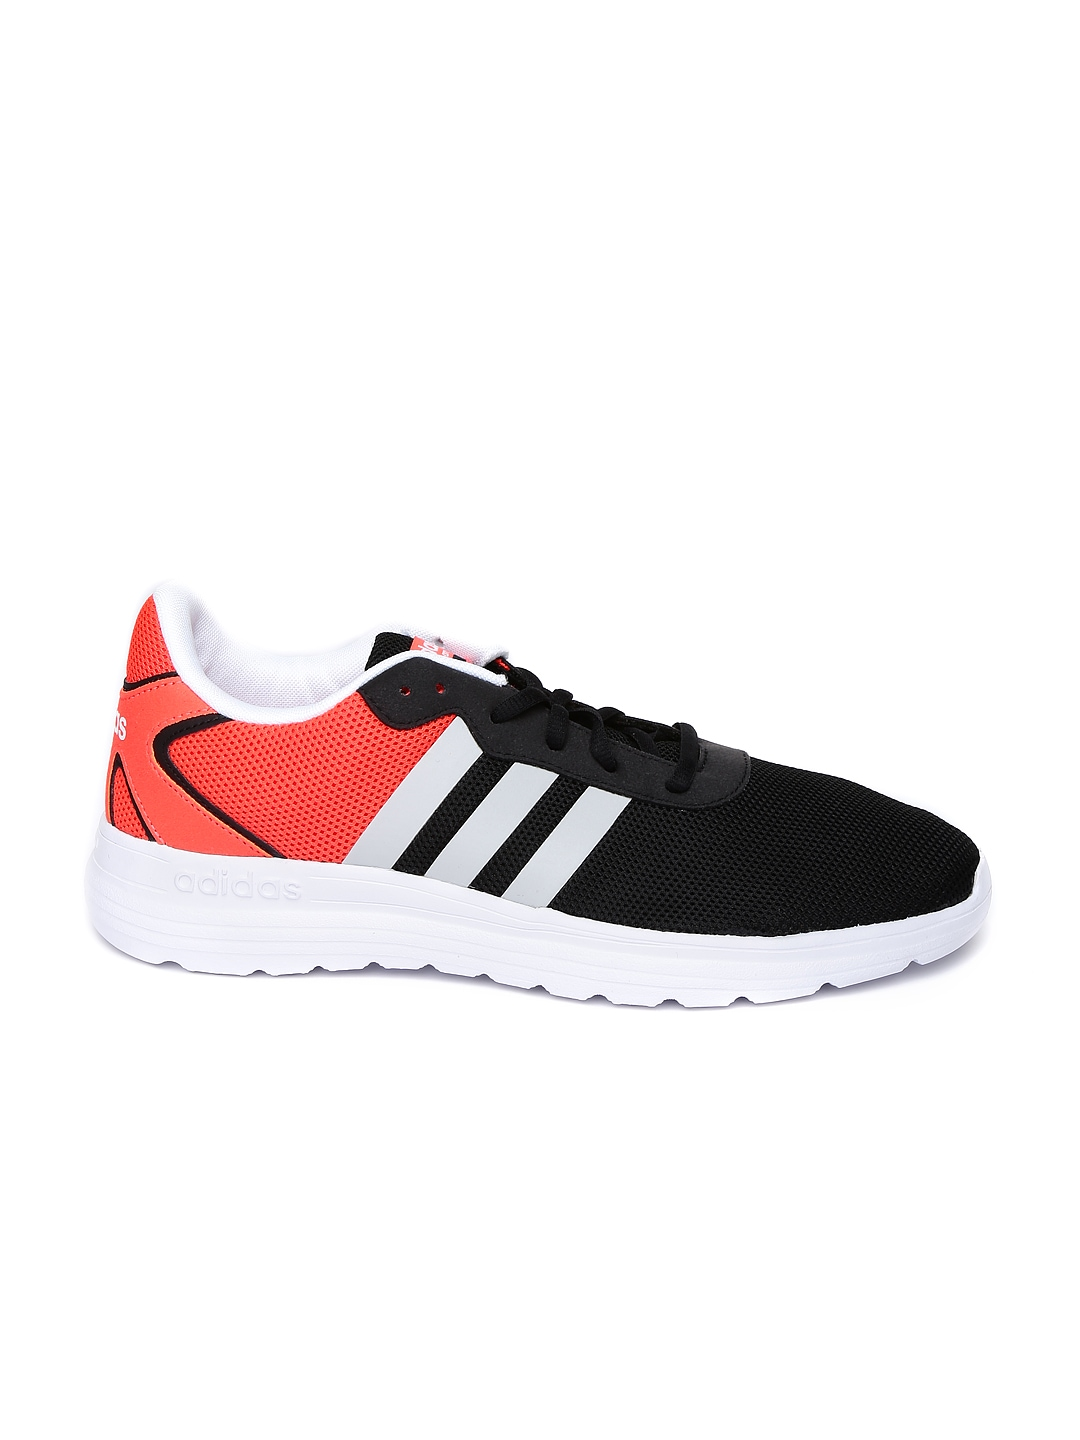 free shipping 12ada 4c09b adidas neo leather red gold